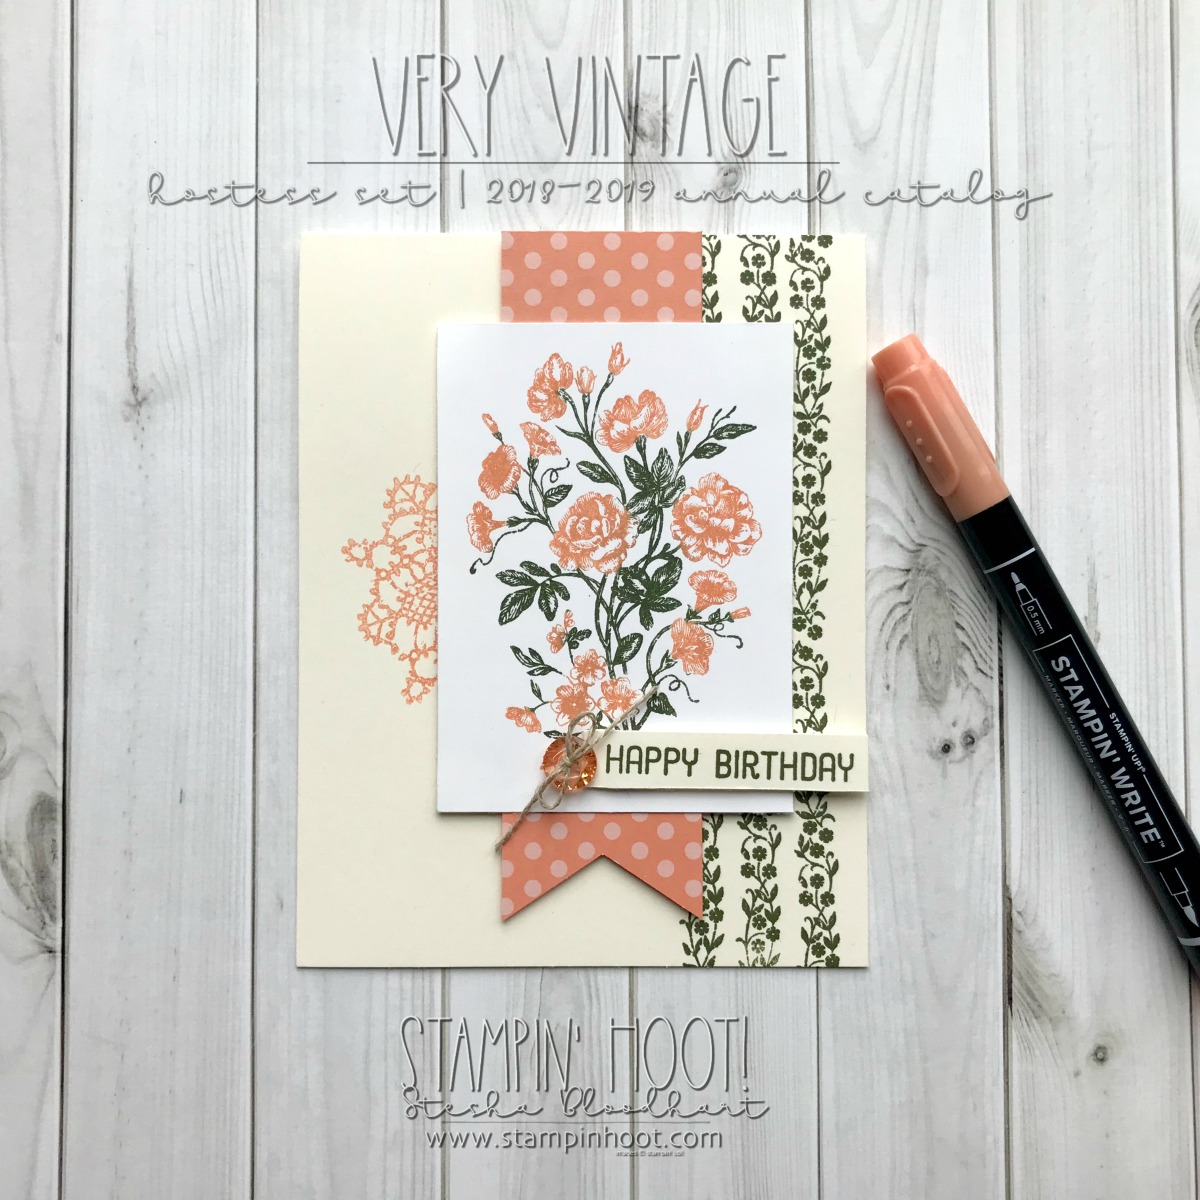 Very Vintage Hostess Stamp Set by Stampin' Up! for the #gdp144 Case the Designer Challenge. Handmade Birthday Card by Stesha Bloodhart, Stampin' Hoot! #steshabloodhart #stampinhoot